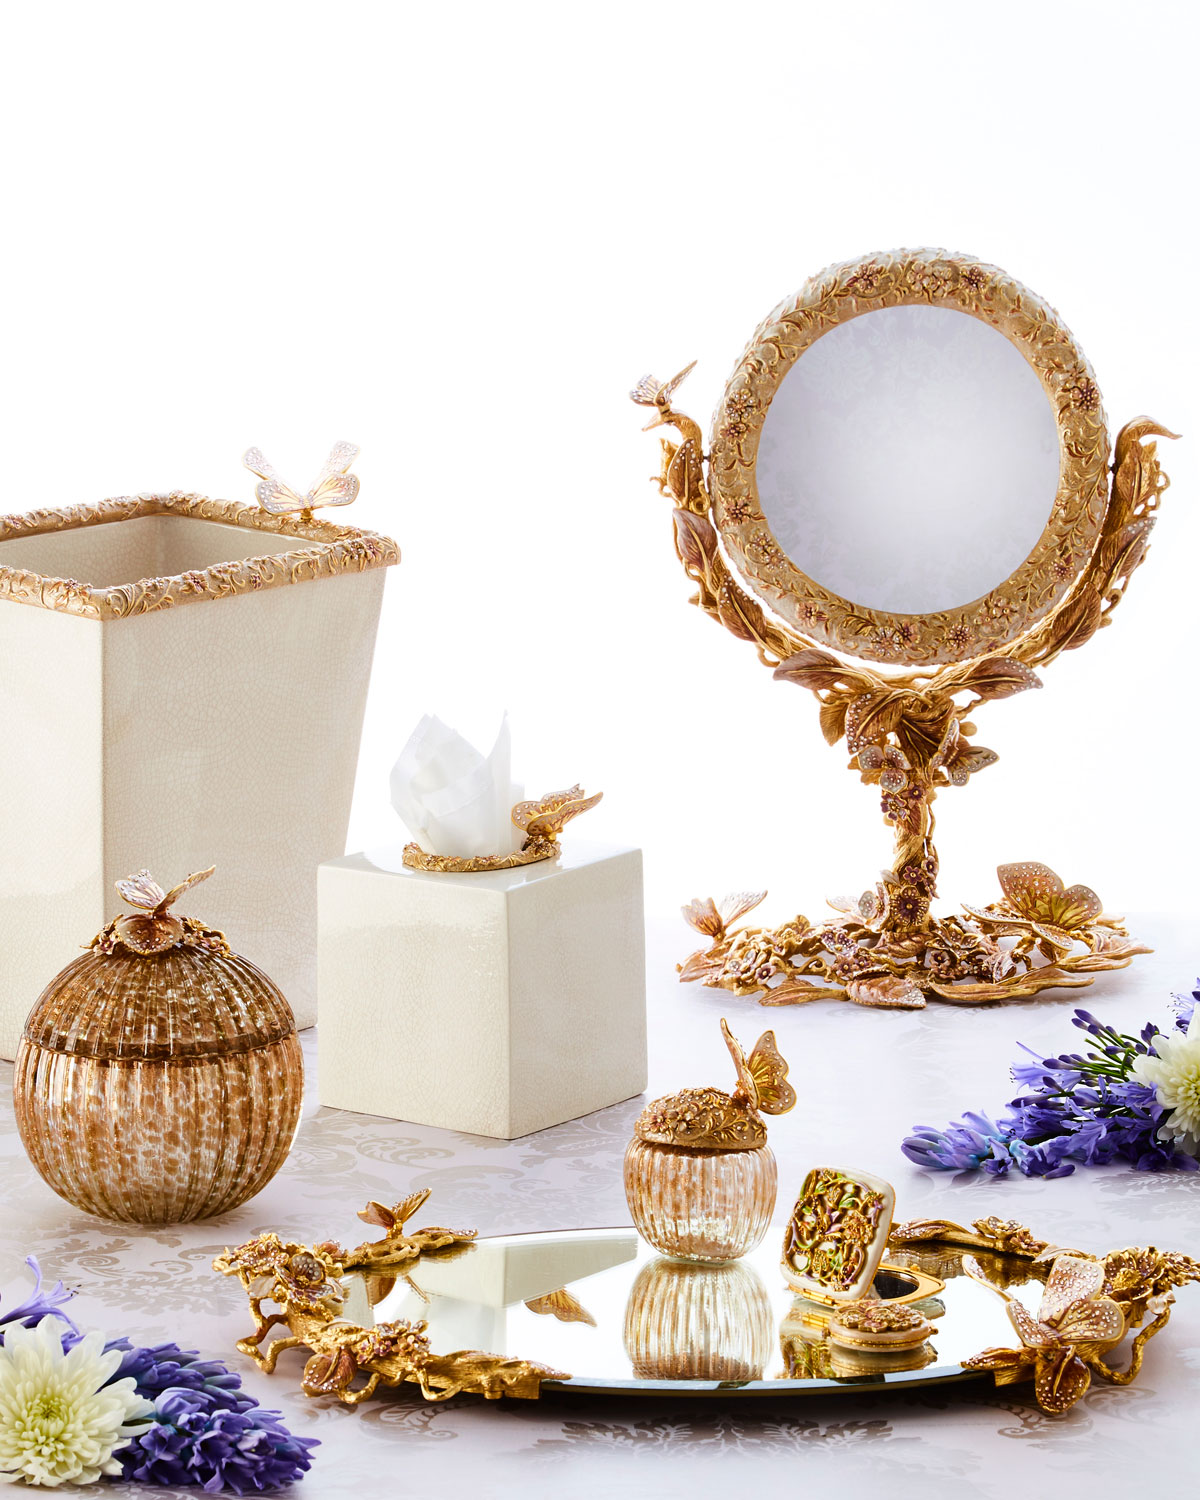 Luxury Gifts & Unique Gift Ideas at Neiman Marcus